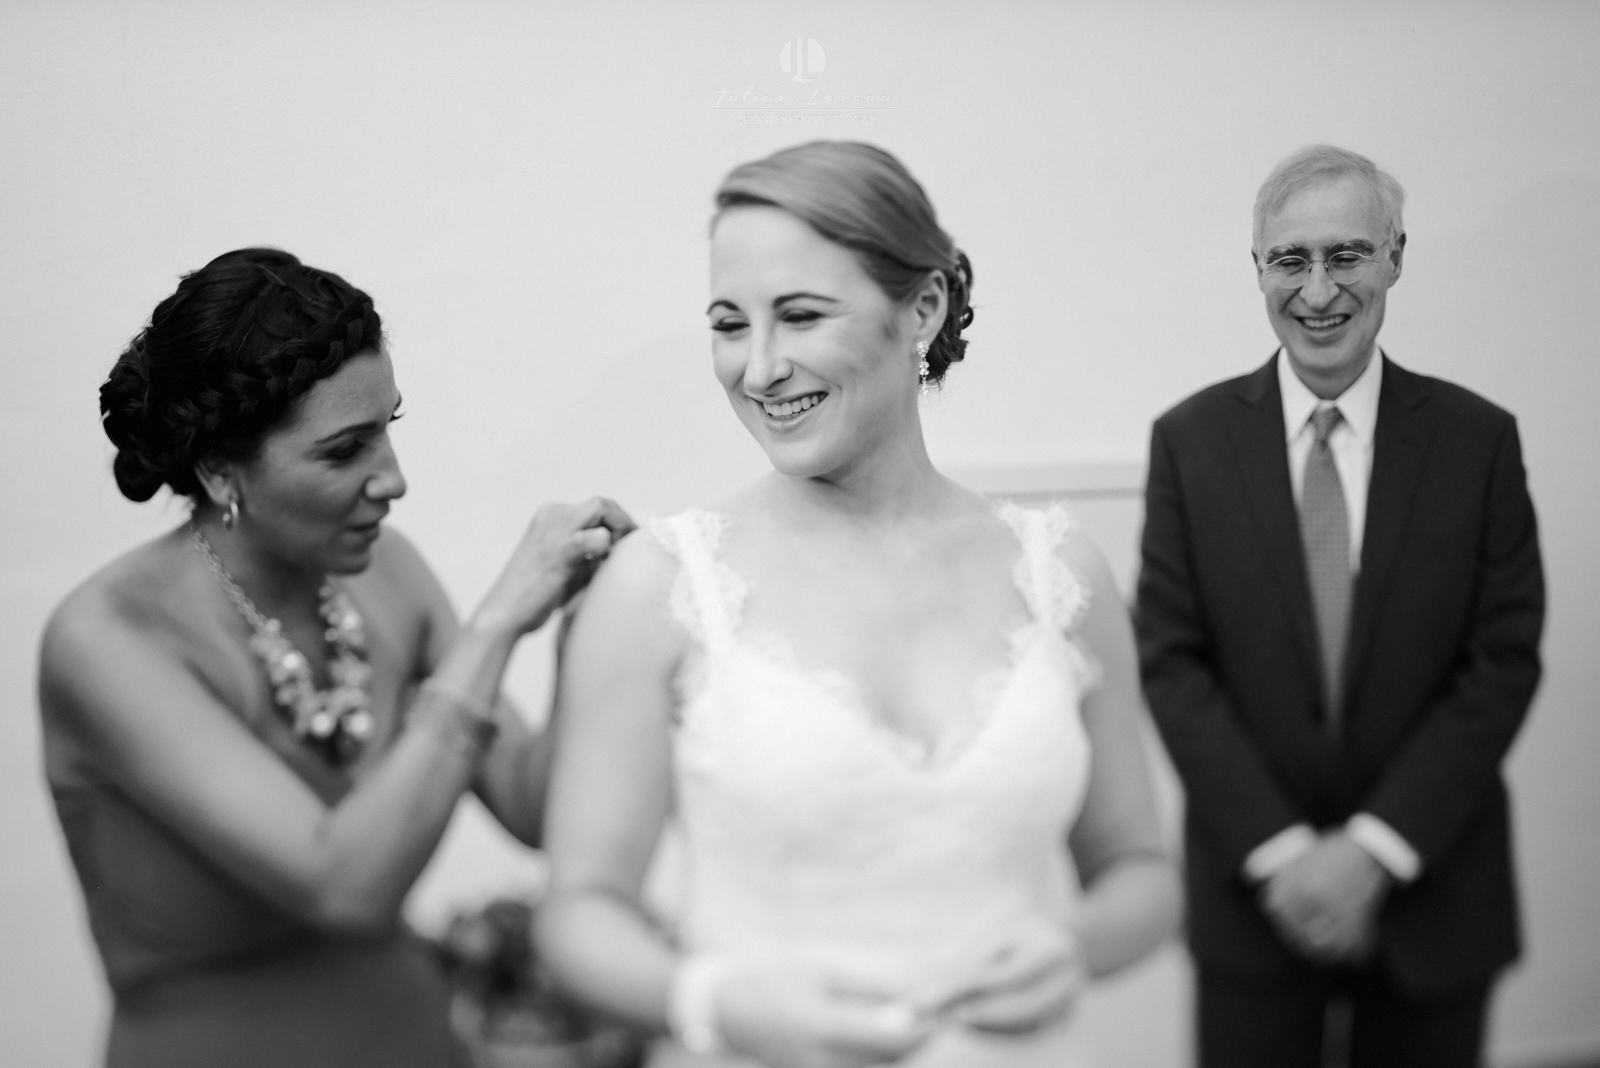 Wedding Photography - Bride and her parents before the wedding